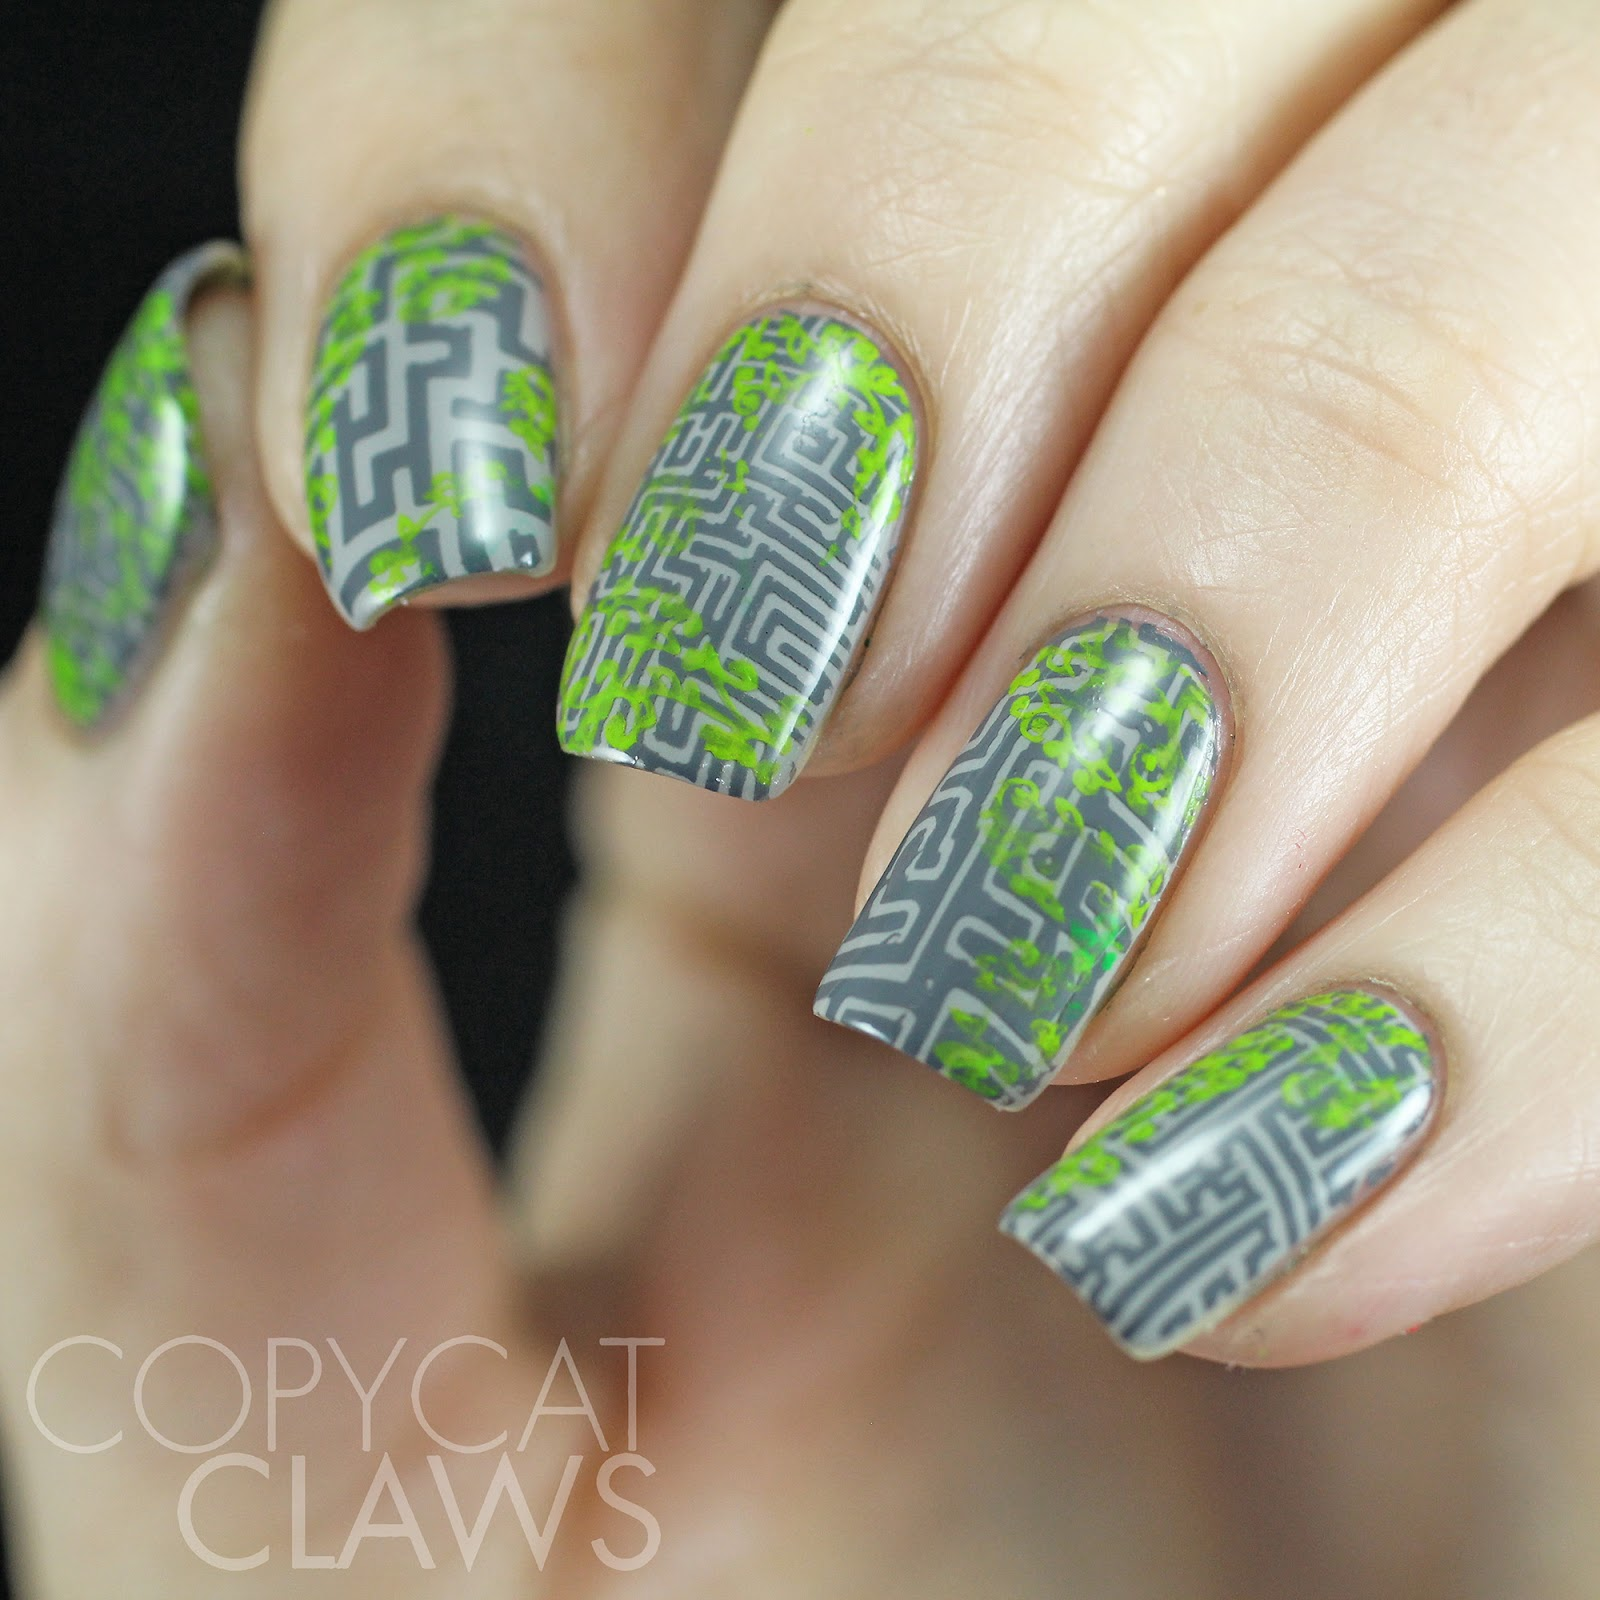 Copycat Claws The Maze Runner Inspired Nail Art